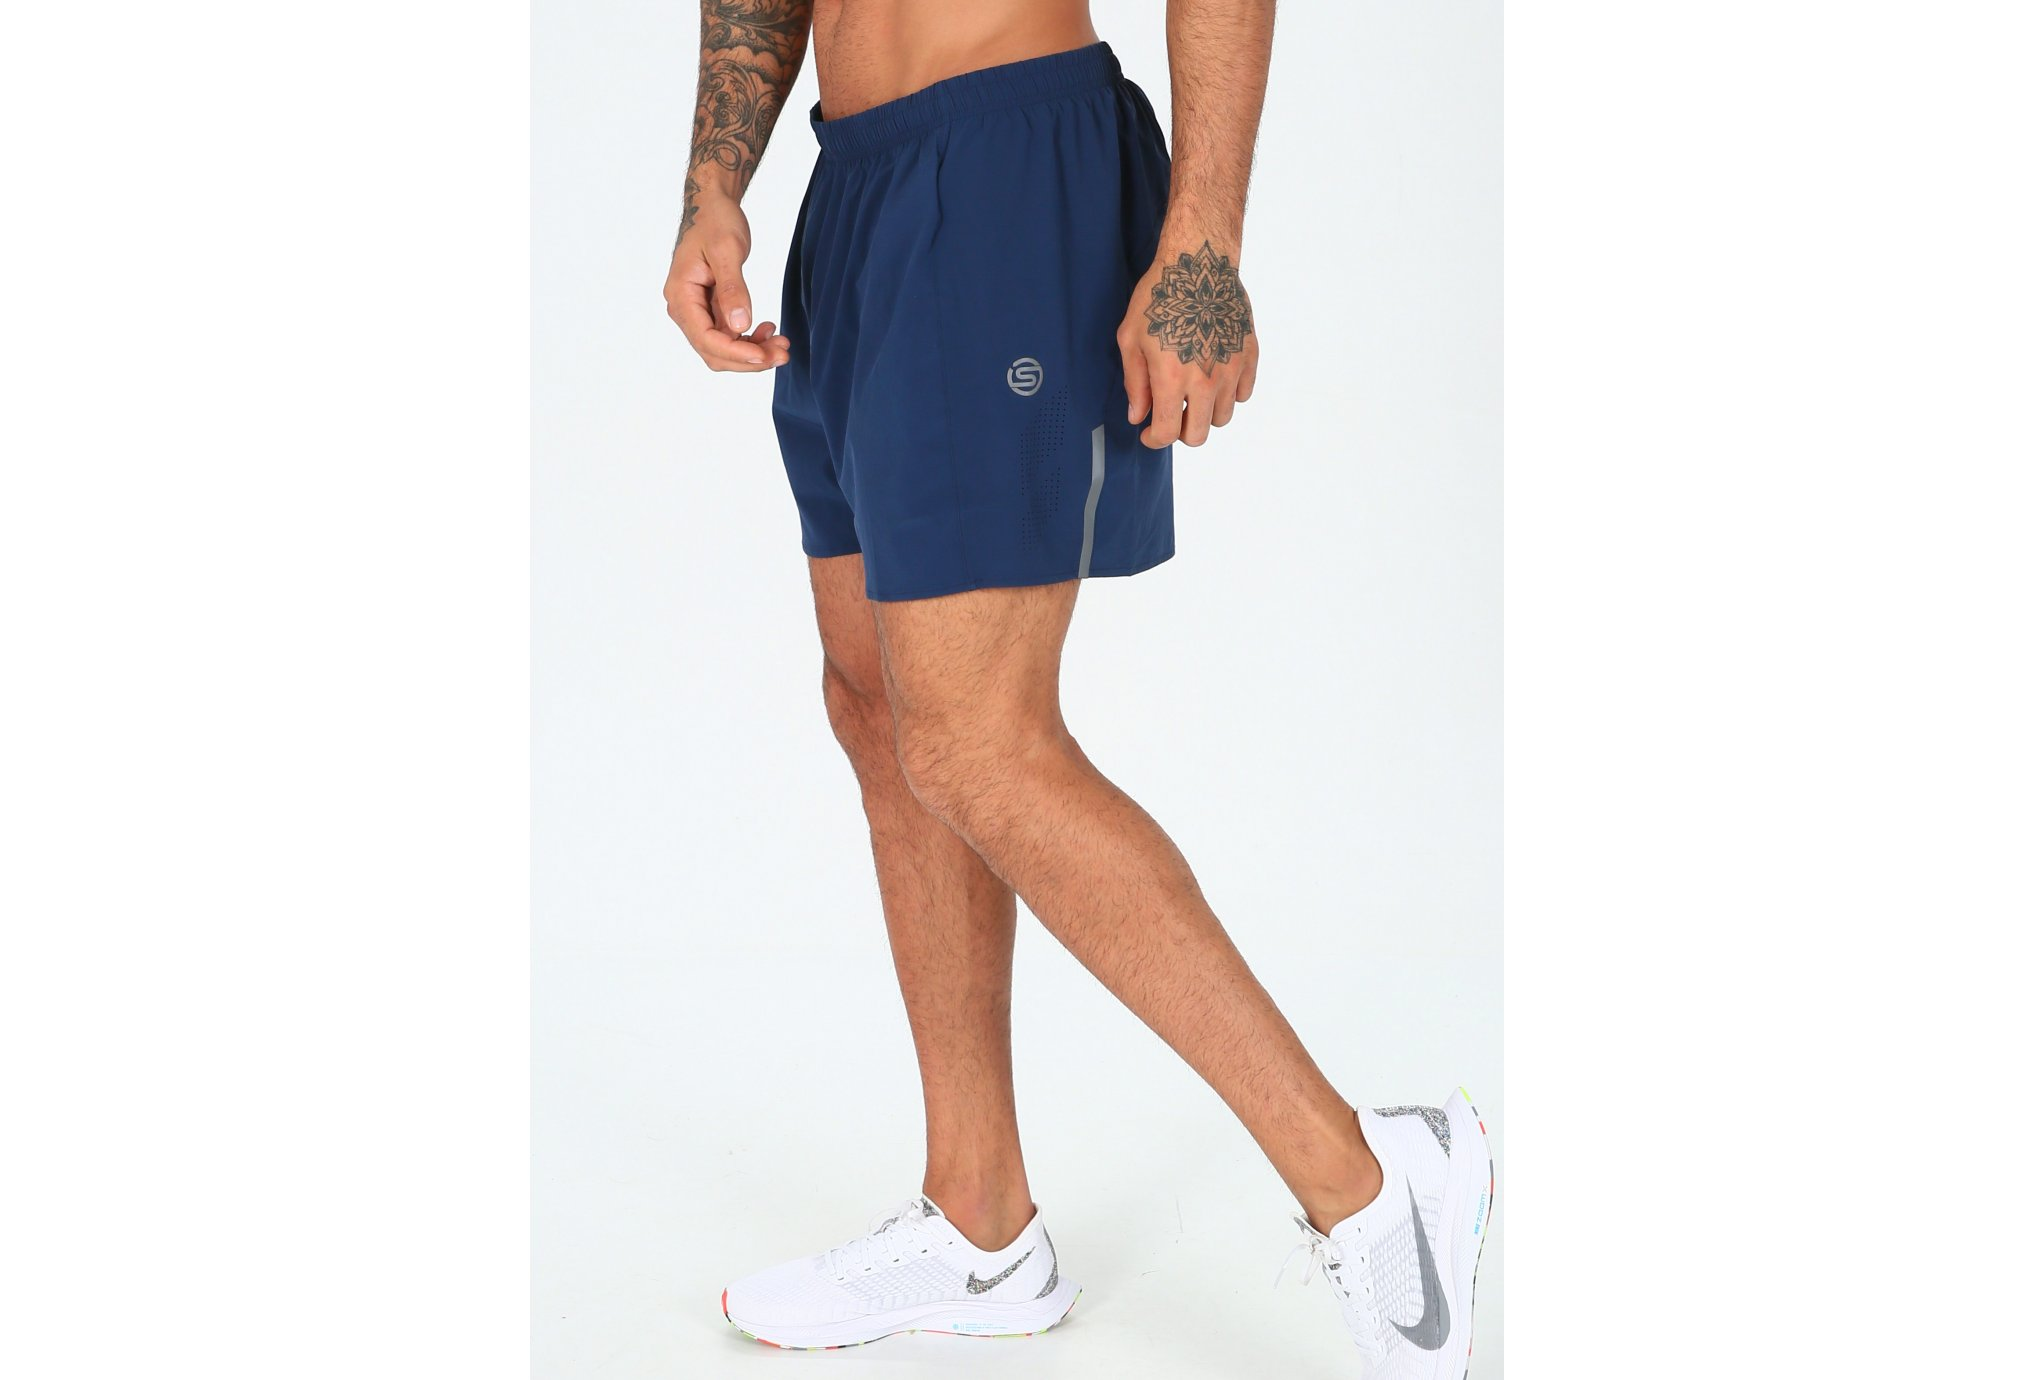 Skins Short Plus Attrex 4inch M vêtement running homme